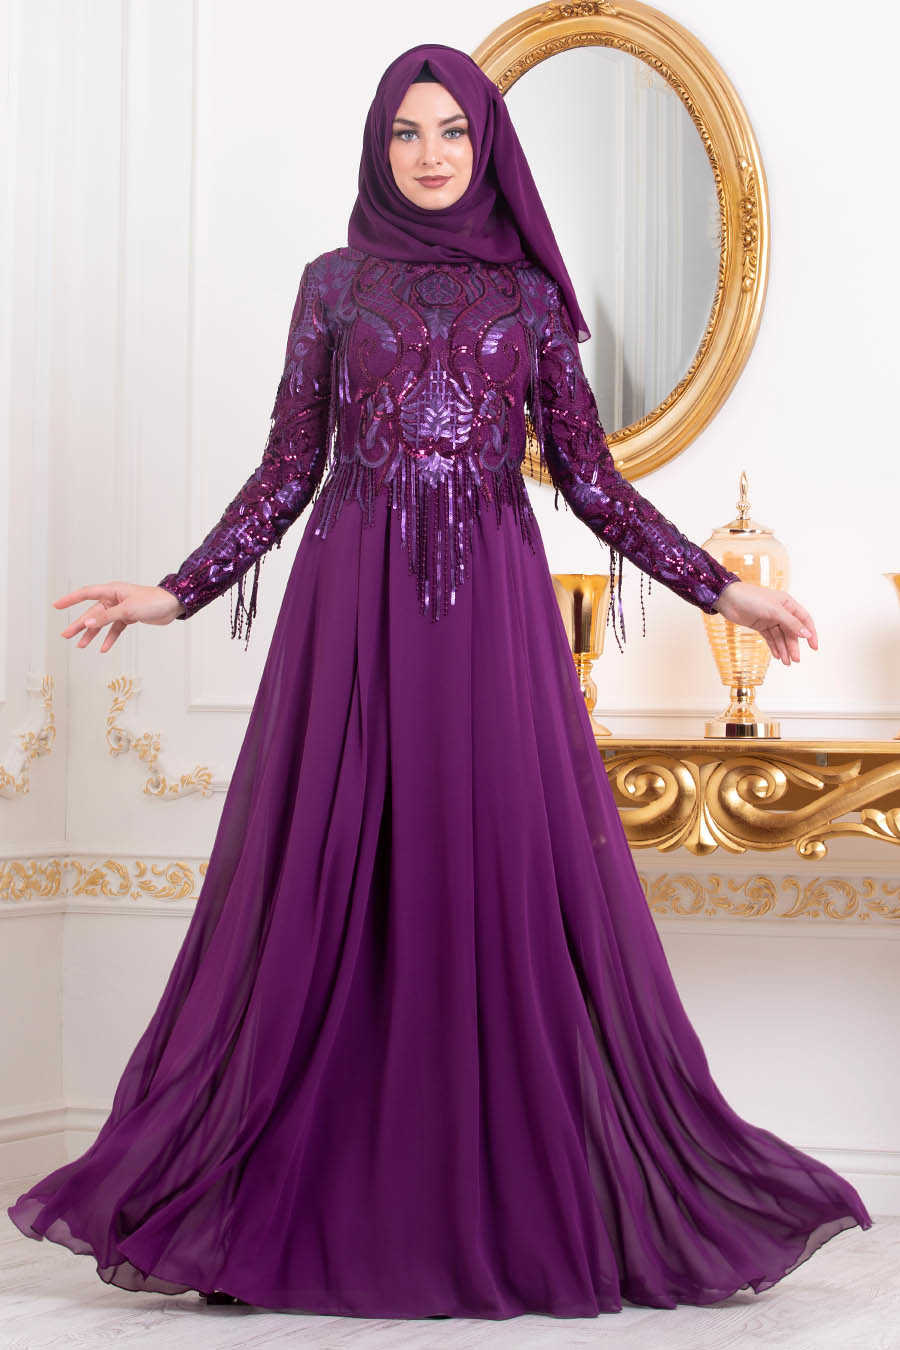 Neva Style - Plum Color Hijab Evening Dress 4591MU